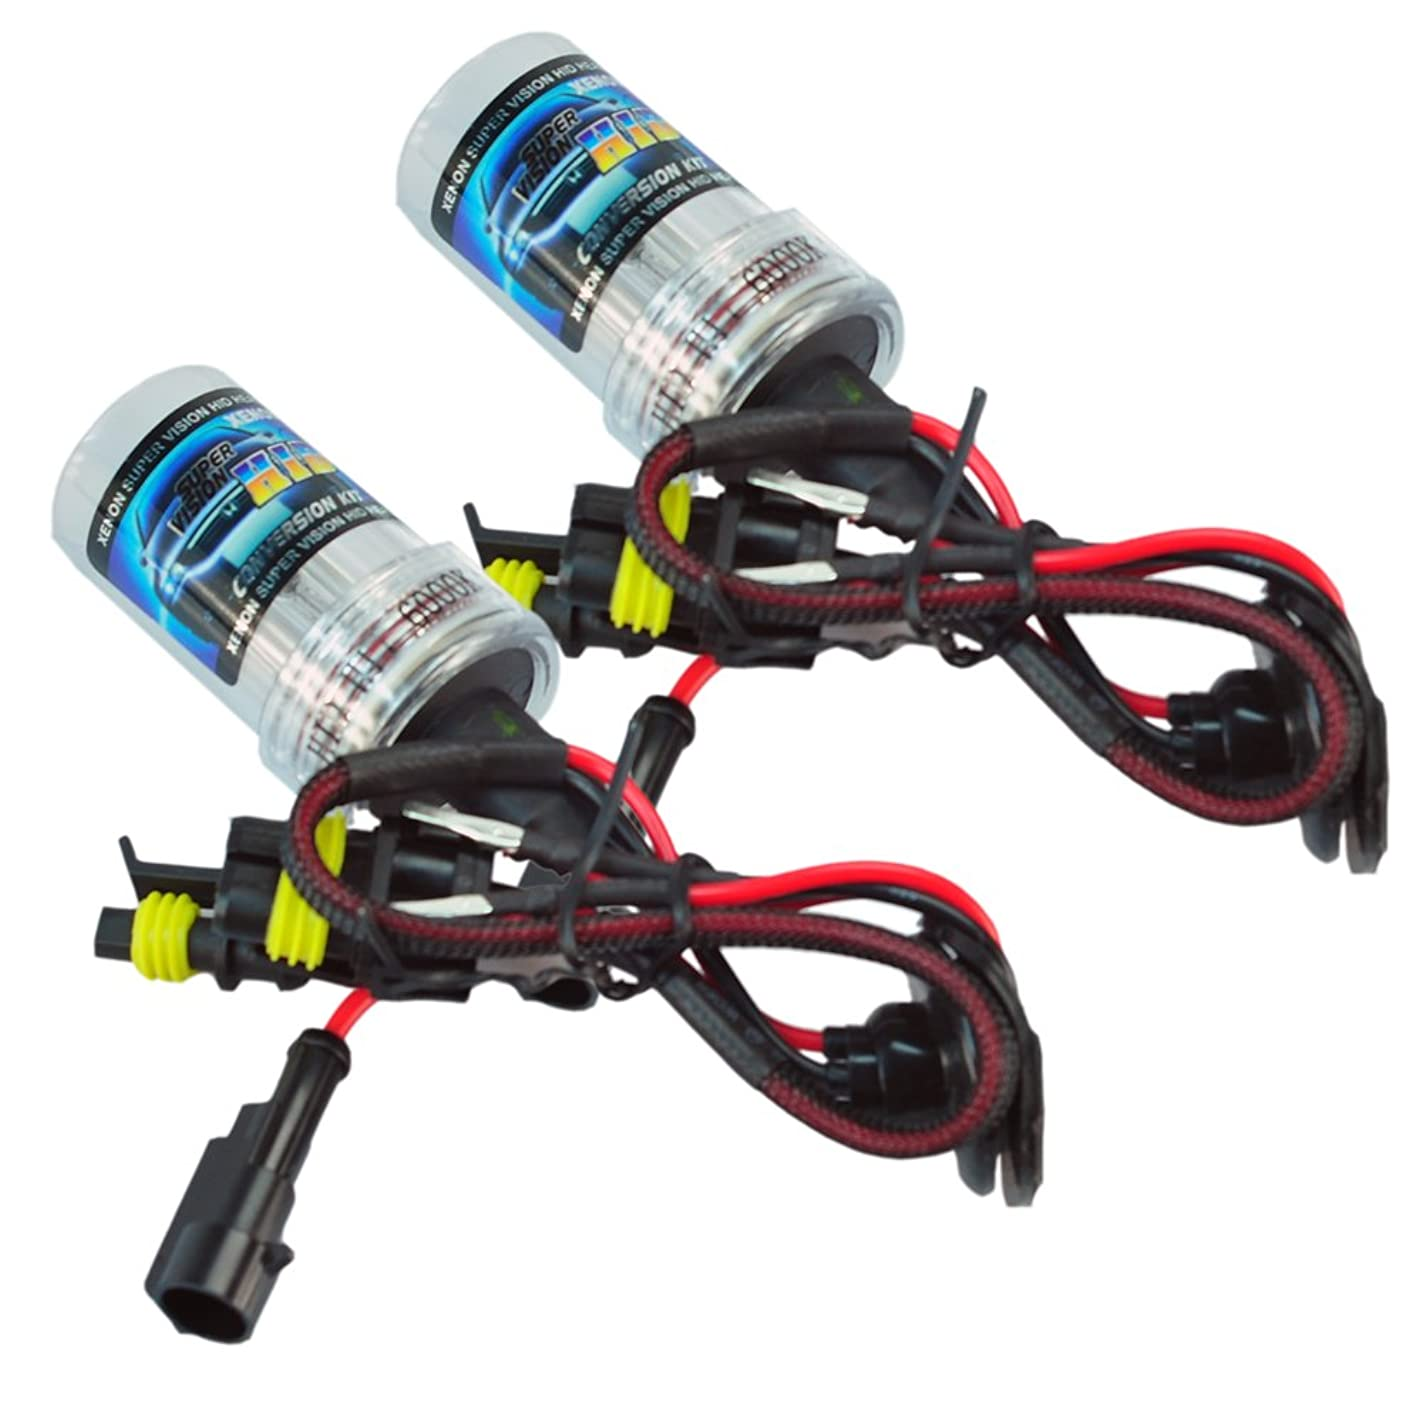 New 35w H11-6000K HID Xenon Lights Replacement Bulbs